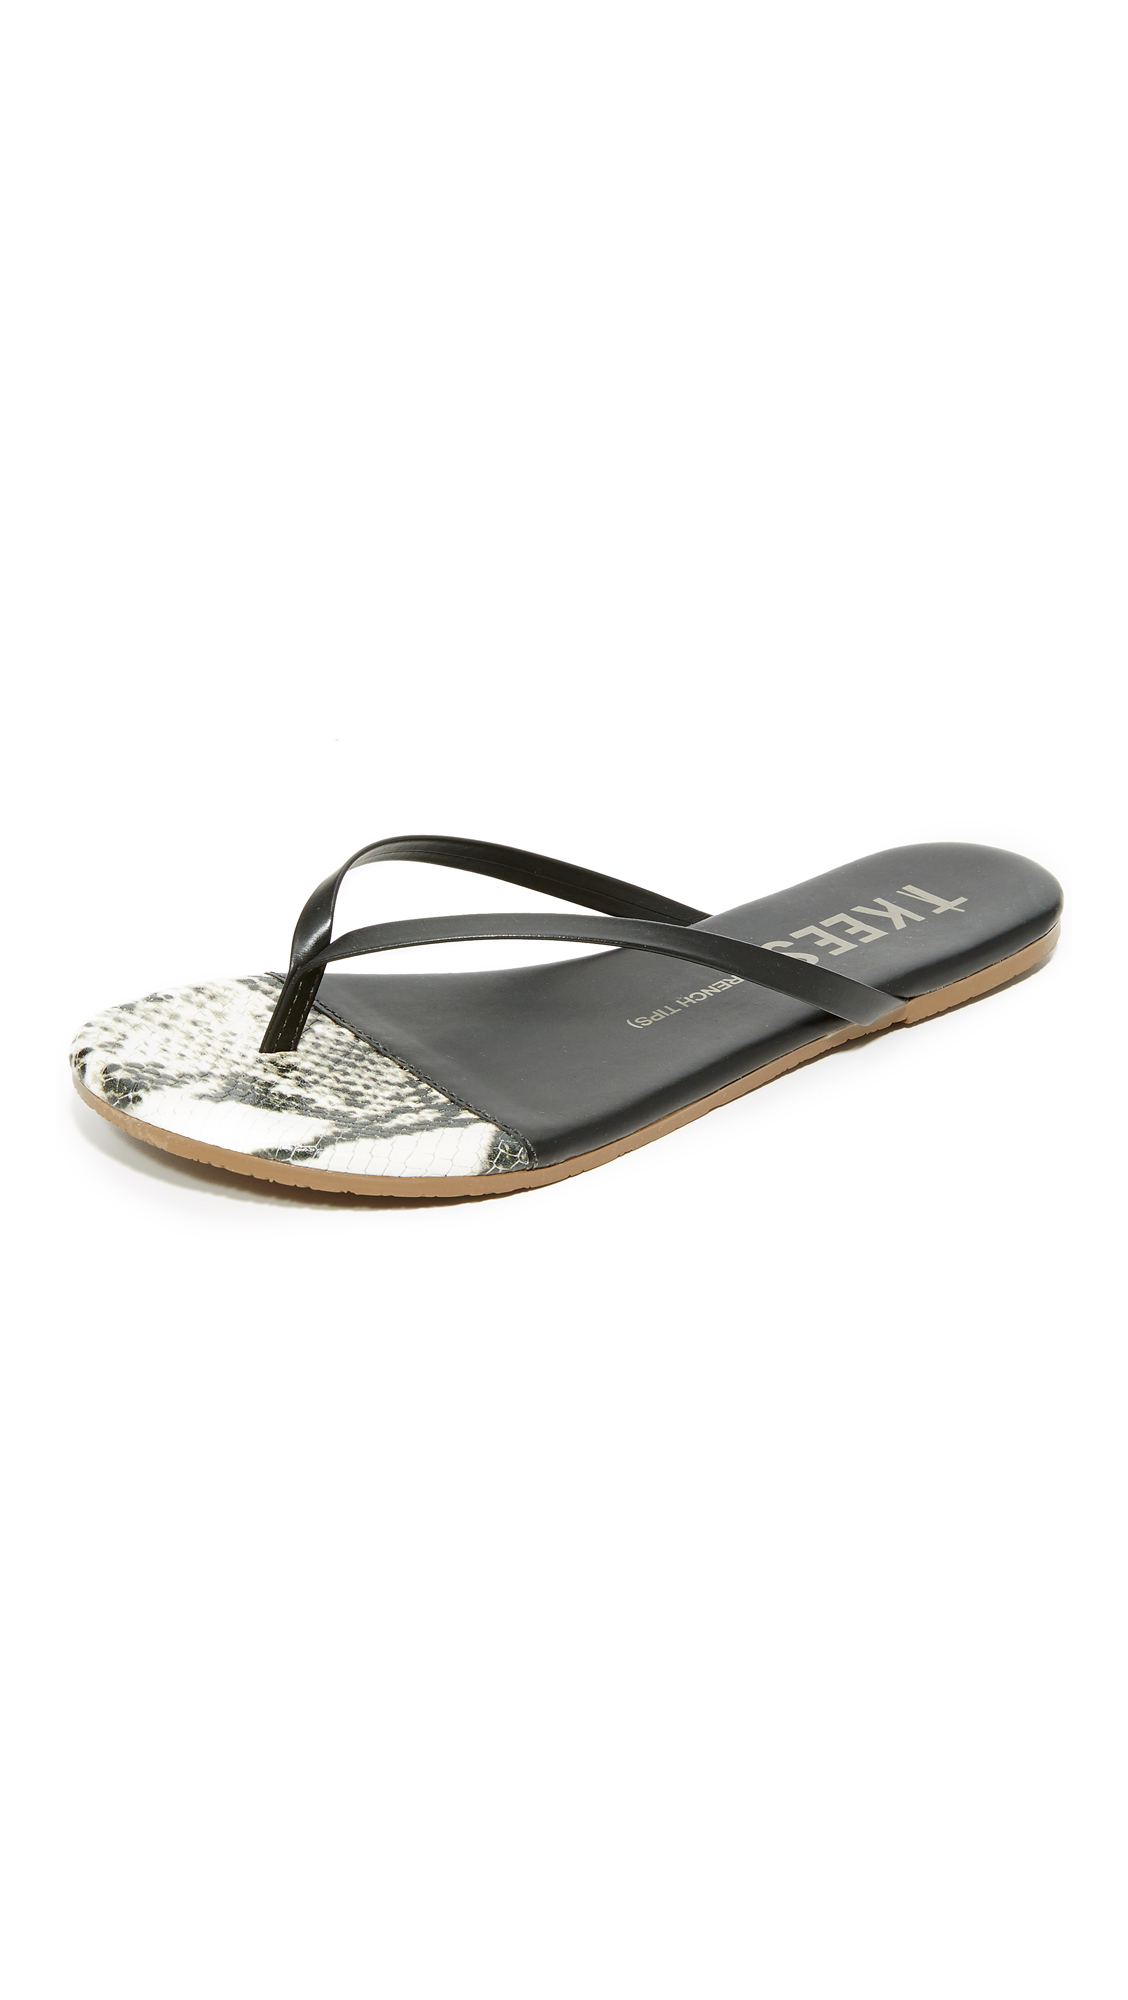 tkees female tkees french tips flip flops diamondback